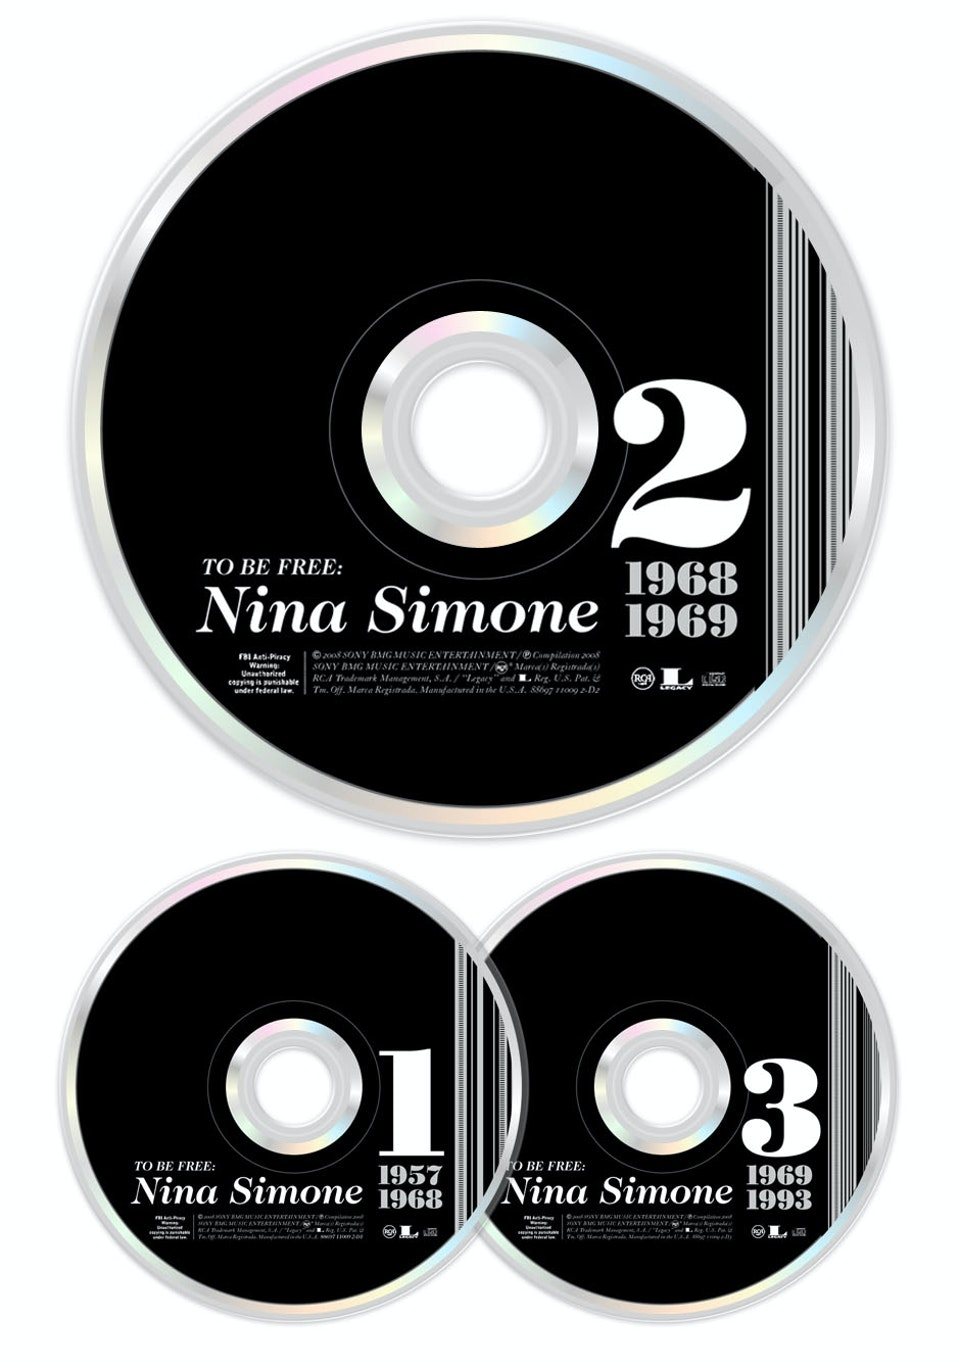 To Be Free: The Nina Simone Story - CD art